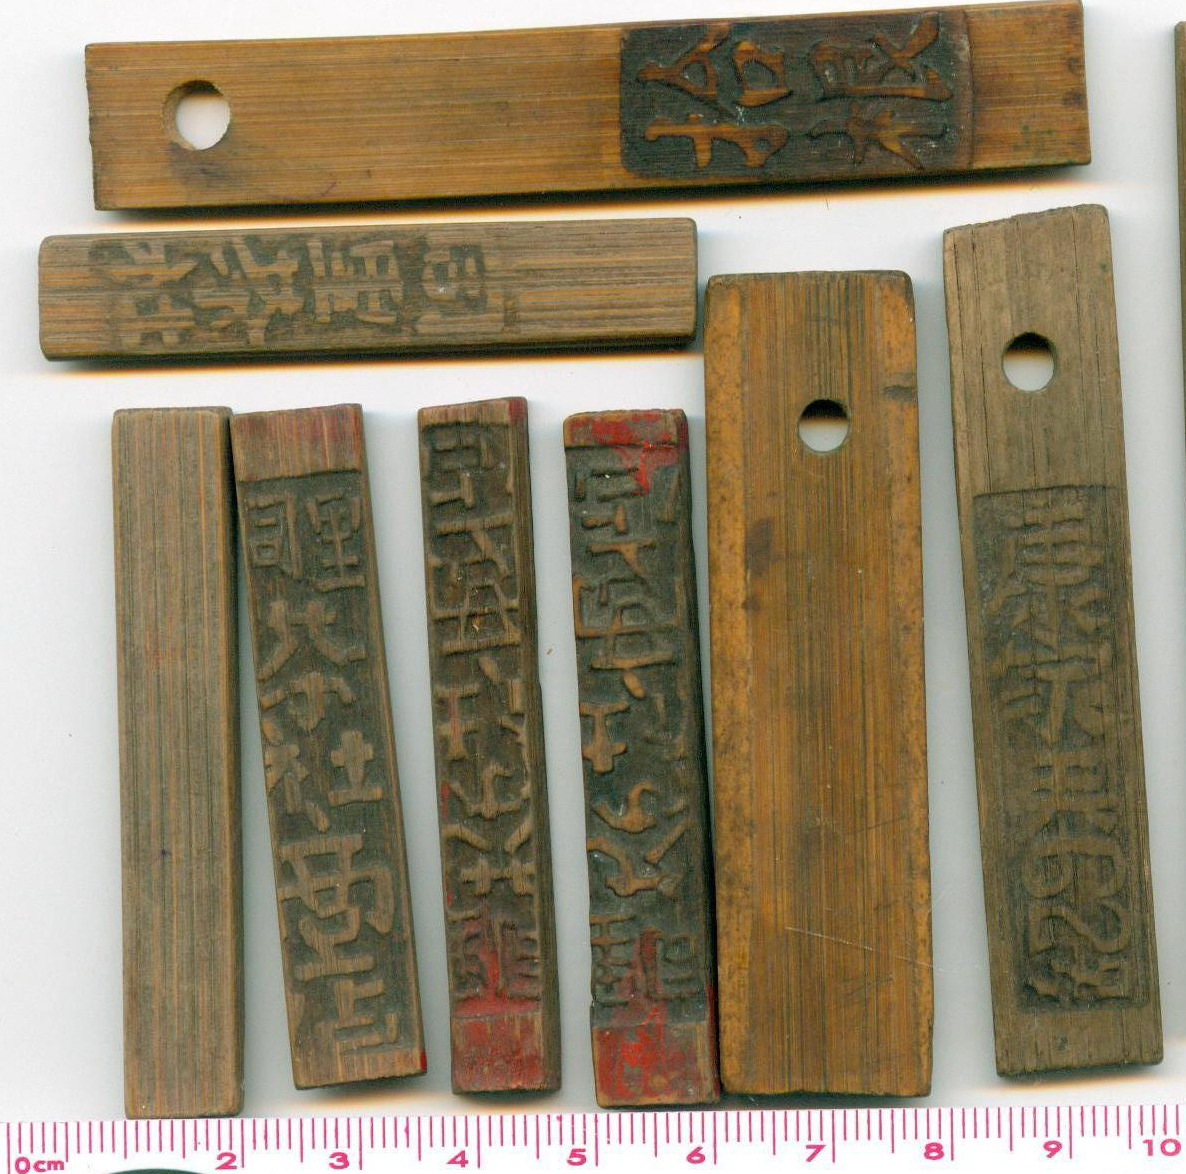 BT101, China 10 Pieces Standard Bamboo Tallies (Tokens), 1930-1940